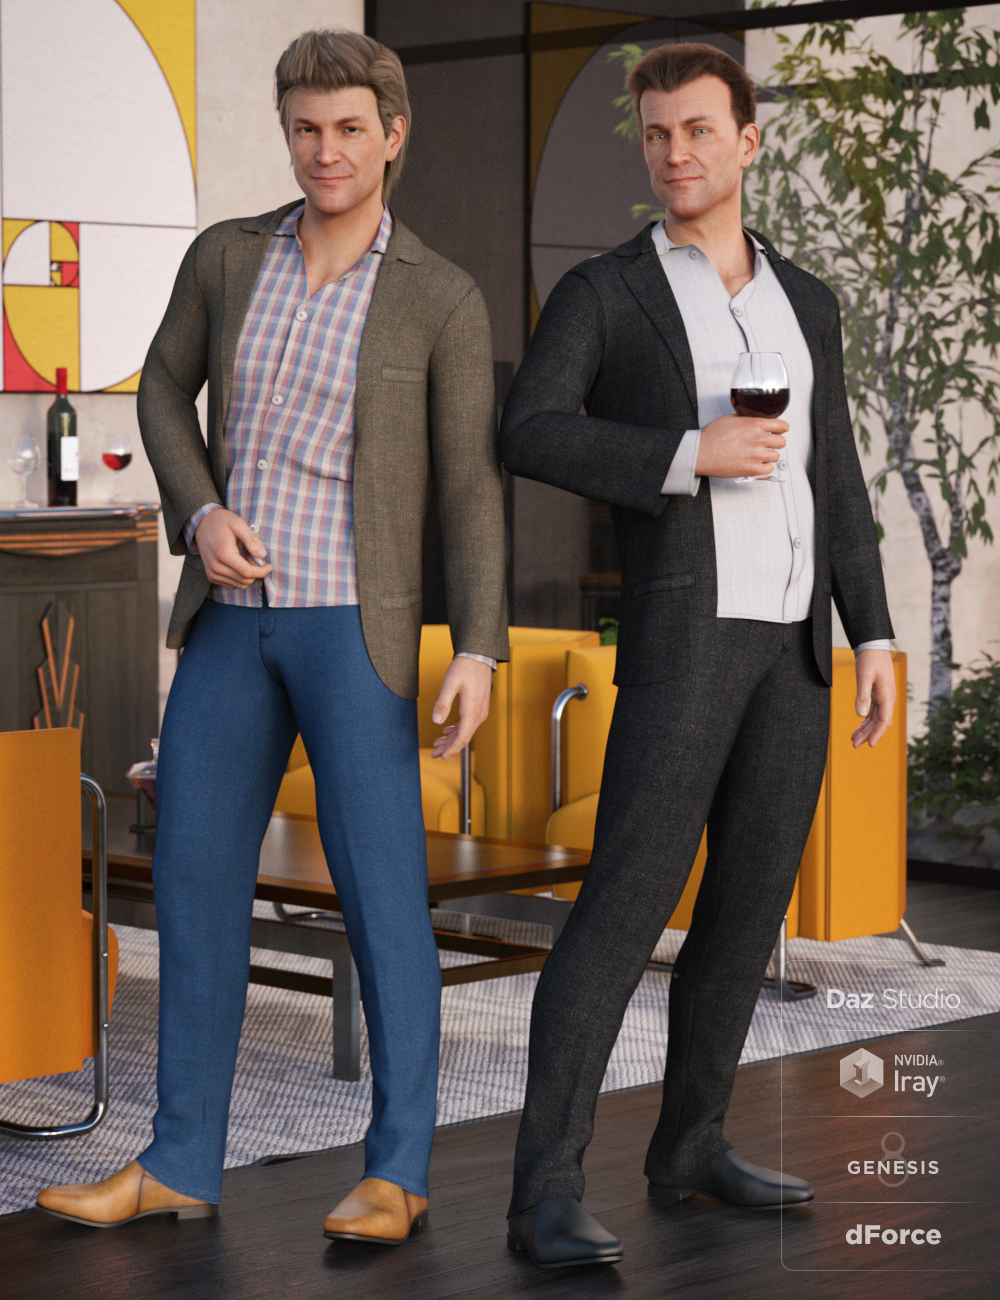 dForce Casual Suit Outfit Textures by: DirtyFairy, 3D Models by Daz 3D